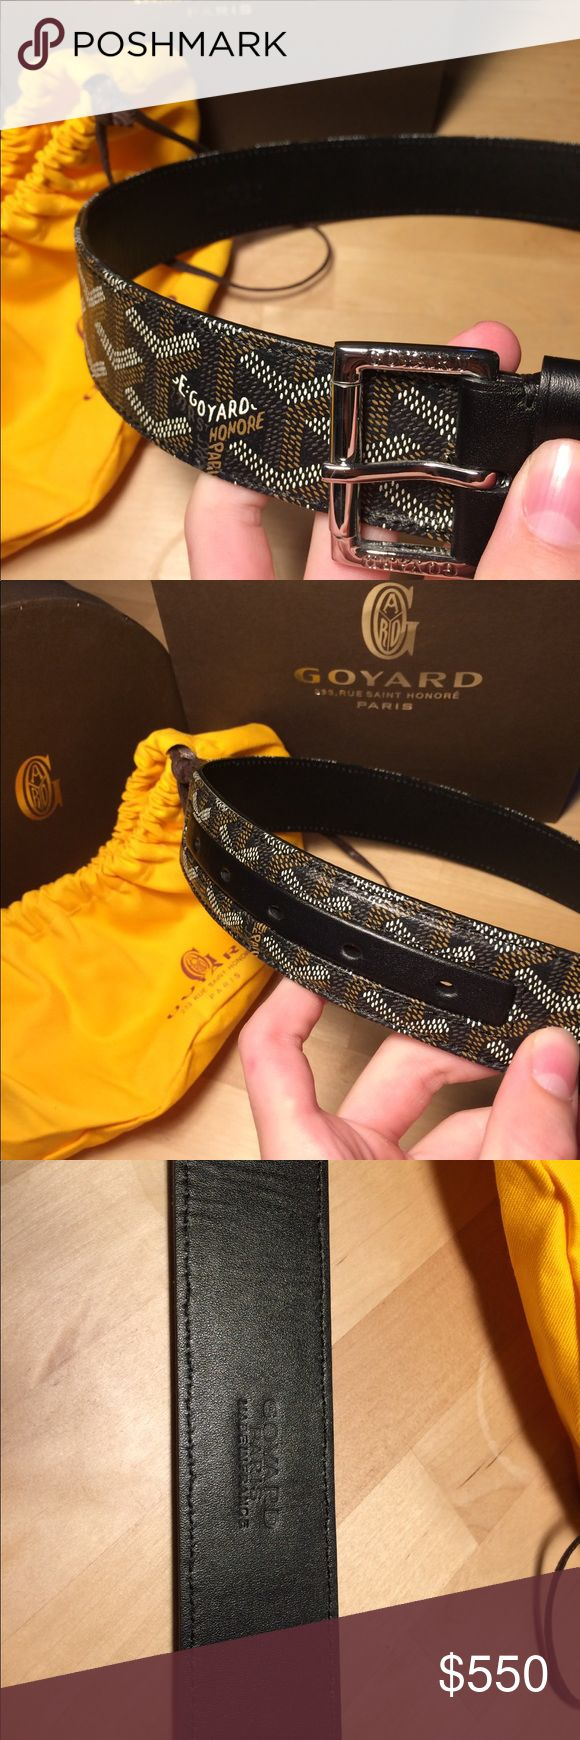 Goyard Belt This belt is near mint. Worn only once there isn't any creasing of any kind. I am selling because I purchased the black with the brown accent where the holes are and that's my daily belt. I'm selling for very cheap for an authentic, near mint Goyard Belt. If you have any questions feel free to ask. Goyard Accessories Belts